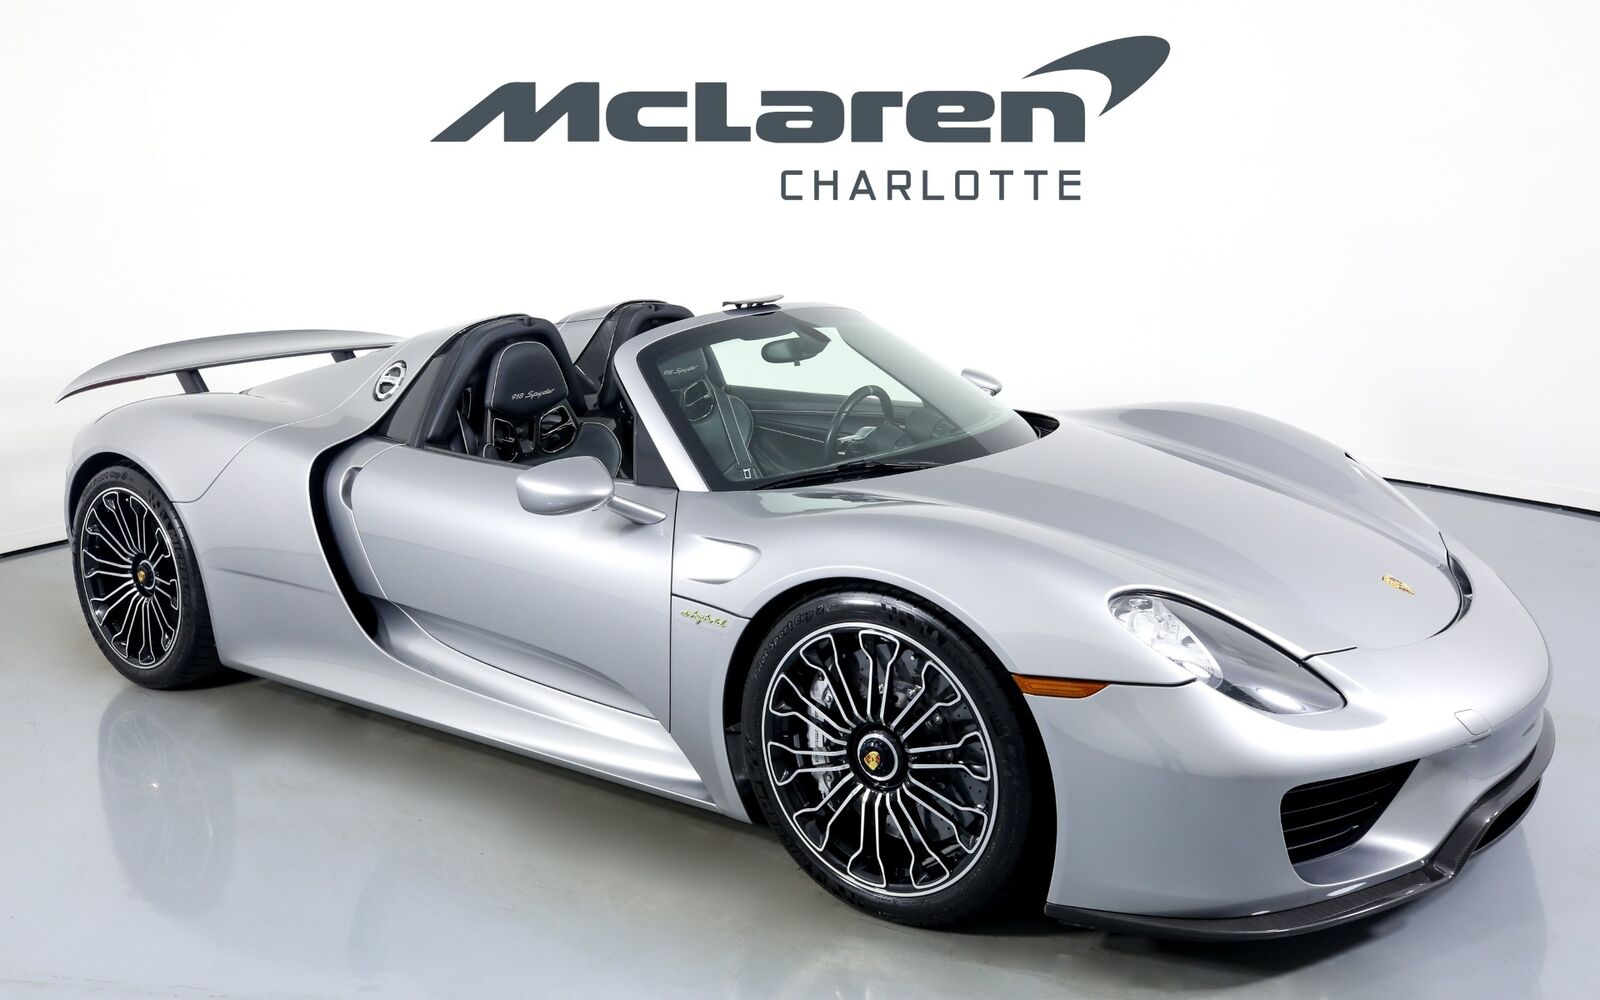 2015 Porsche 918 Spyder, GT Silver Metallic with 5984 Miles available now!